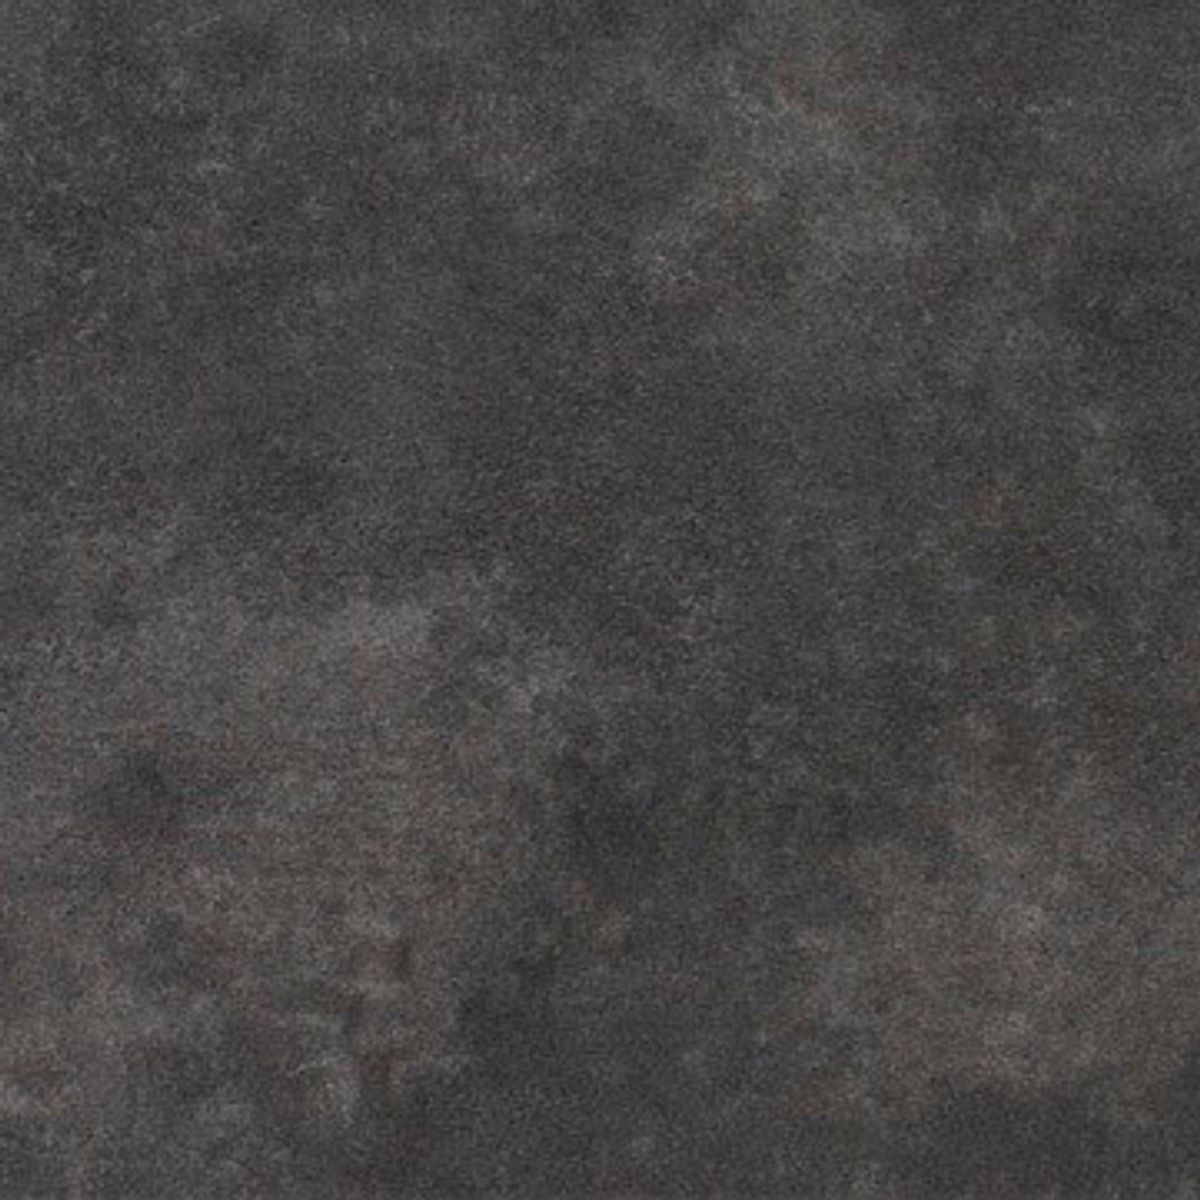 Dalle clipsable béton anthracite 5mm Nuoro